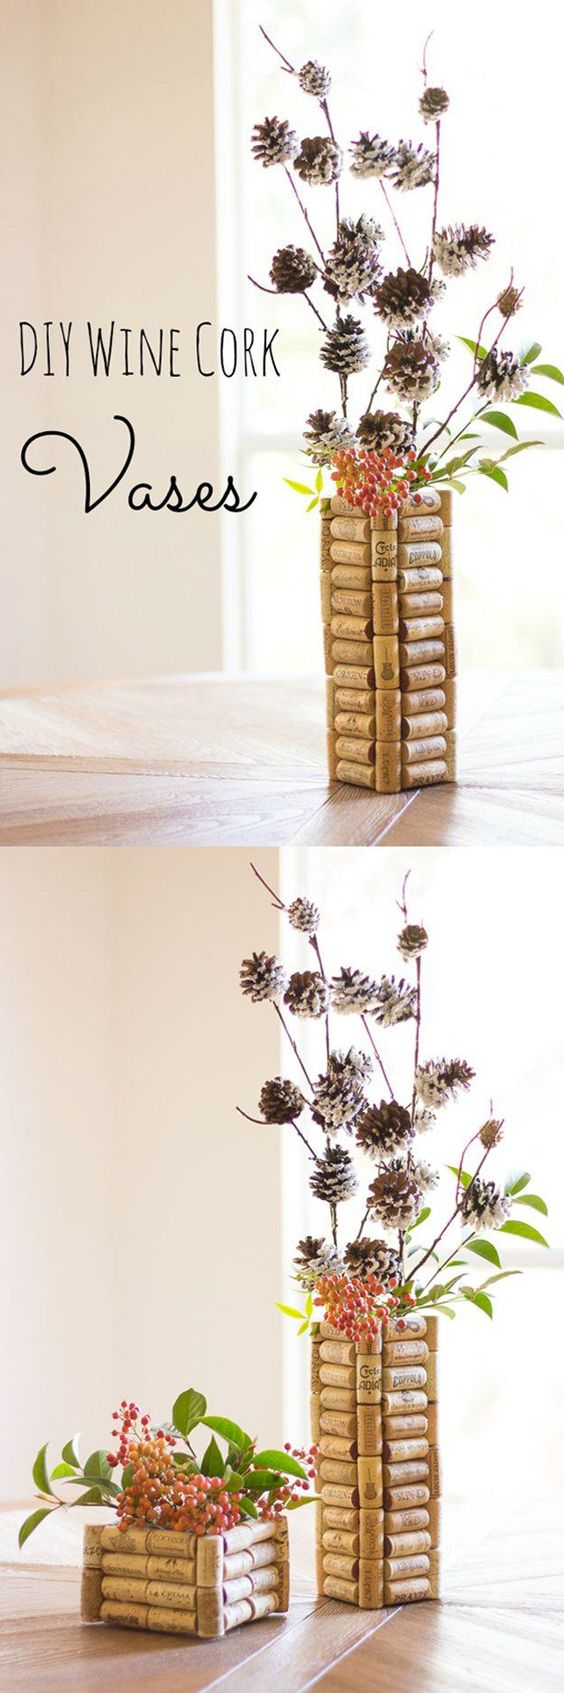 43 More DIY Wine Cork Crafts Ideas http://DIYReady.com | Easy DIY Crafts, Fun Projects, & DIY Craft Ideas For Kids & Adults